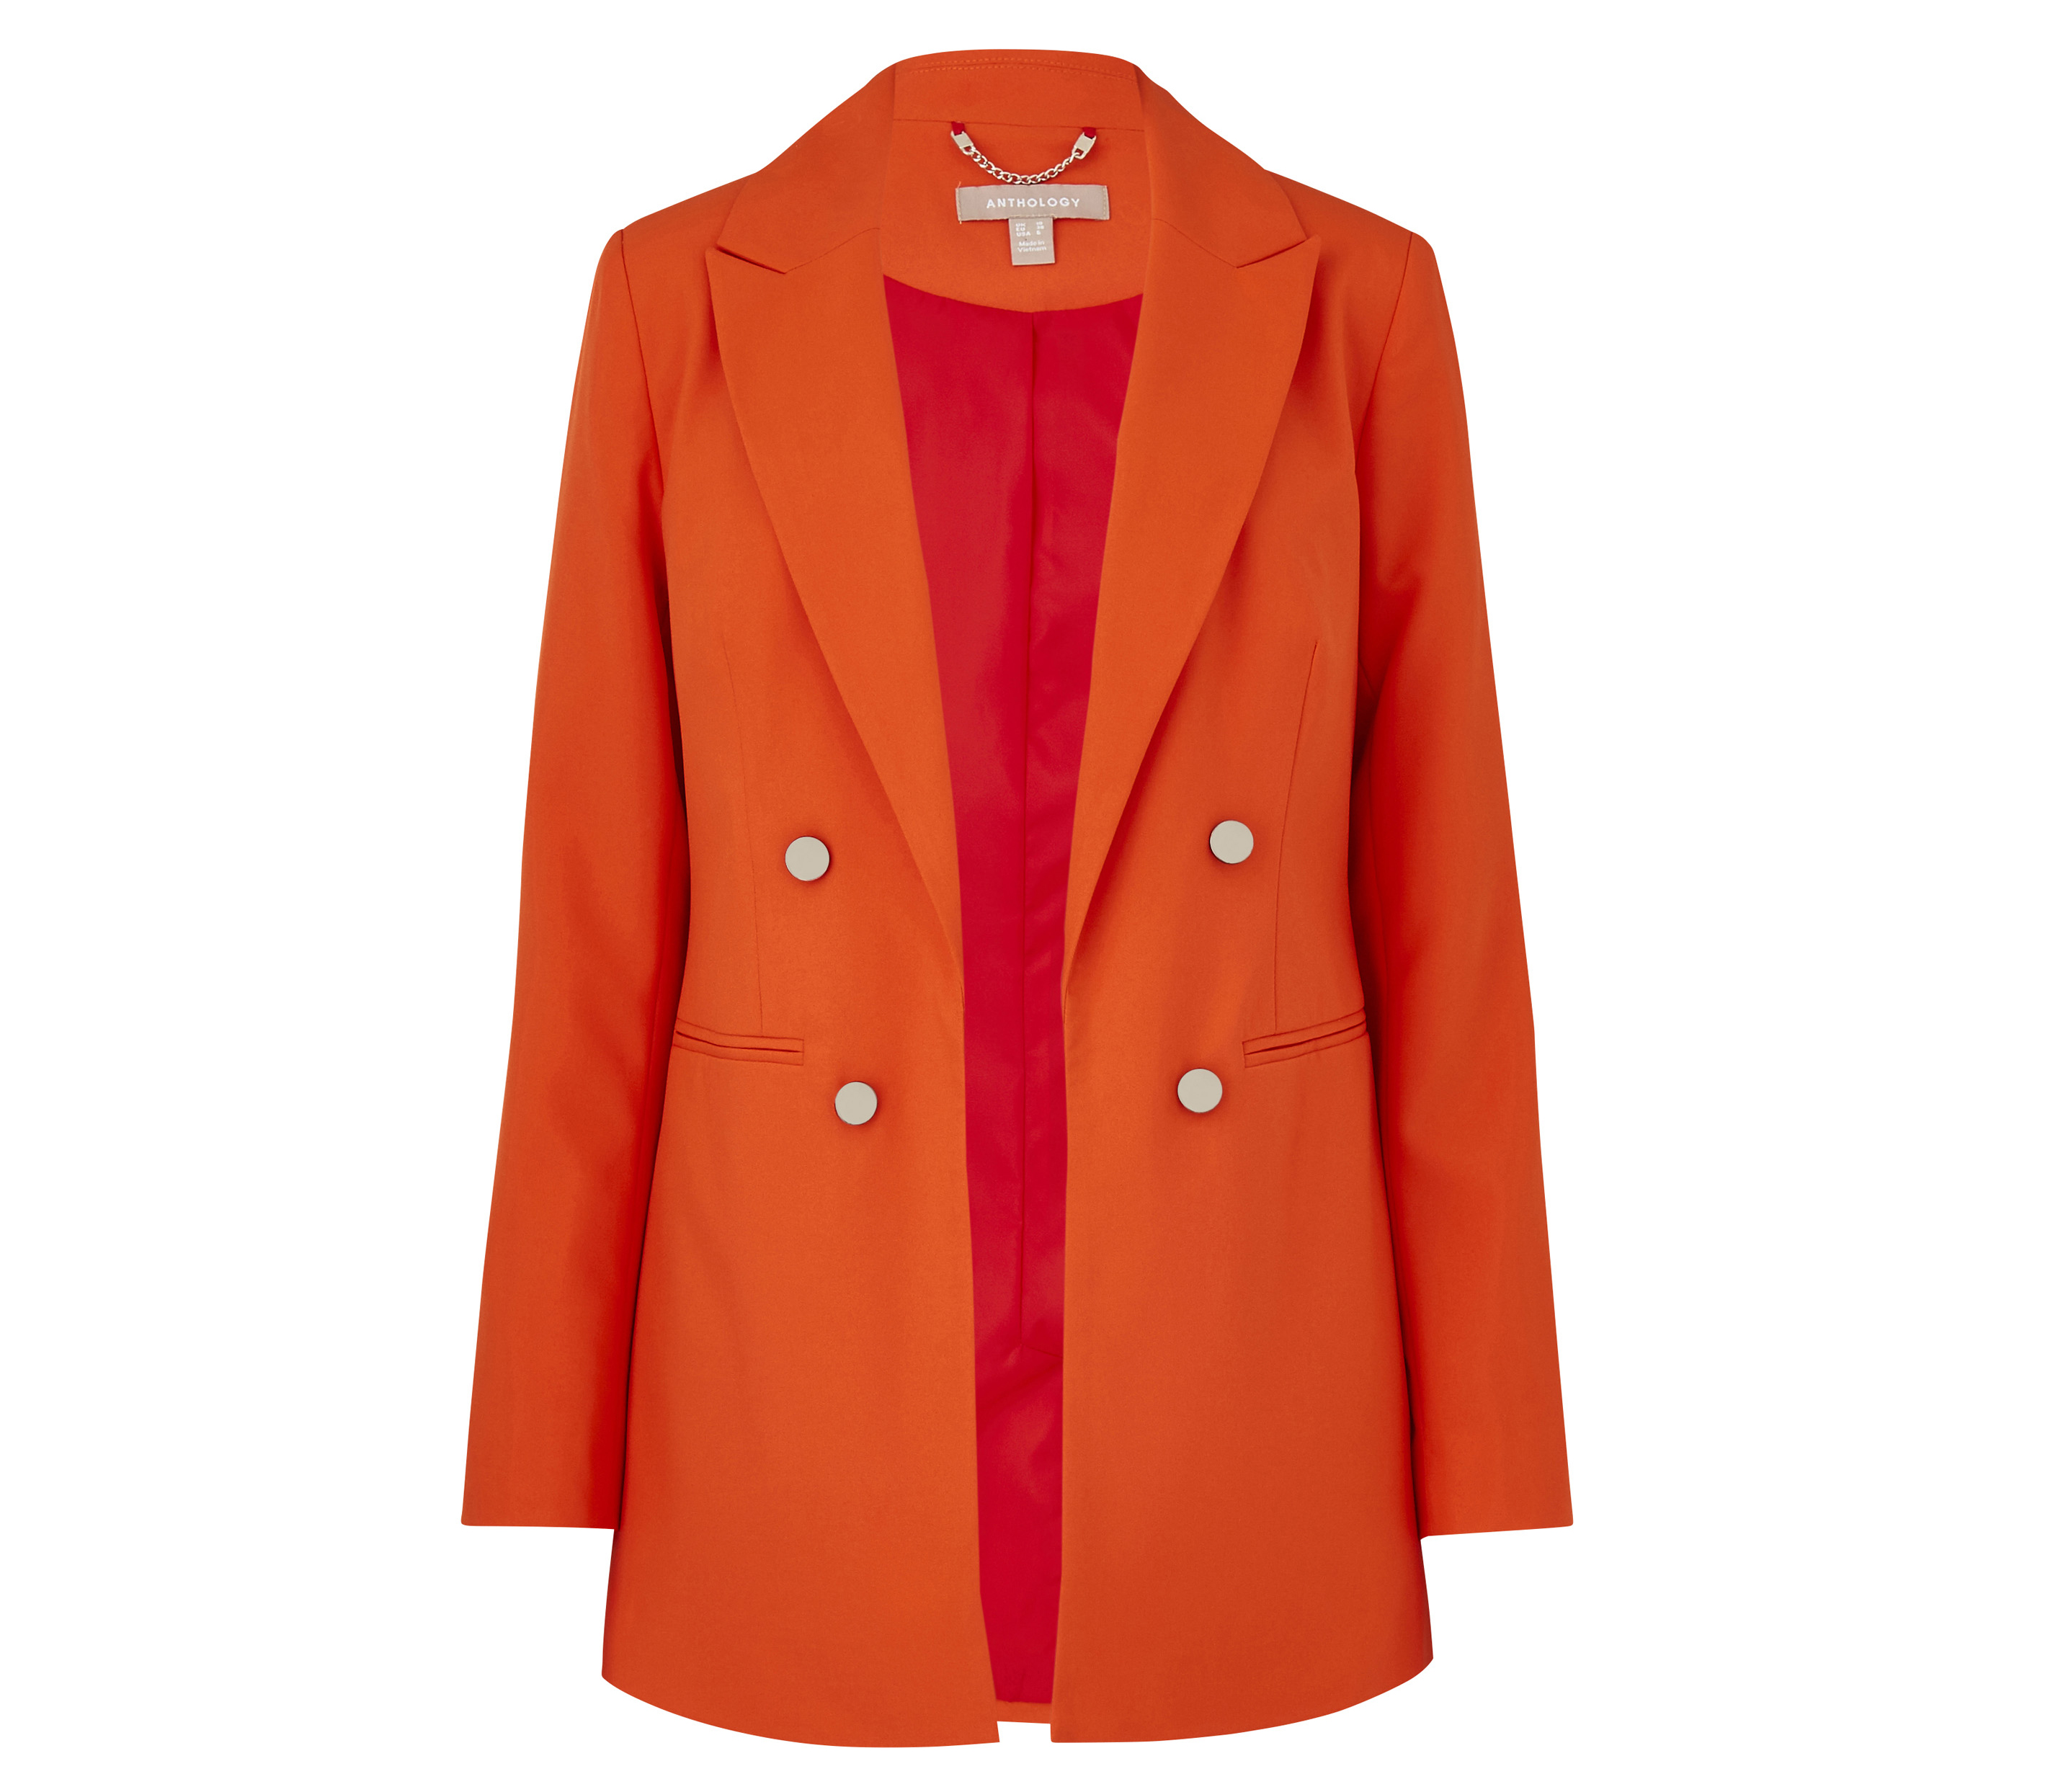 JD Williams Orange Mix & Match Fashion Blazer